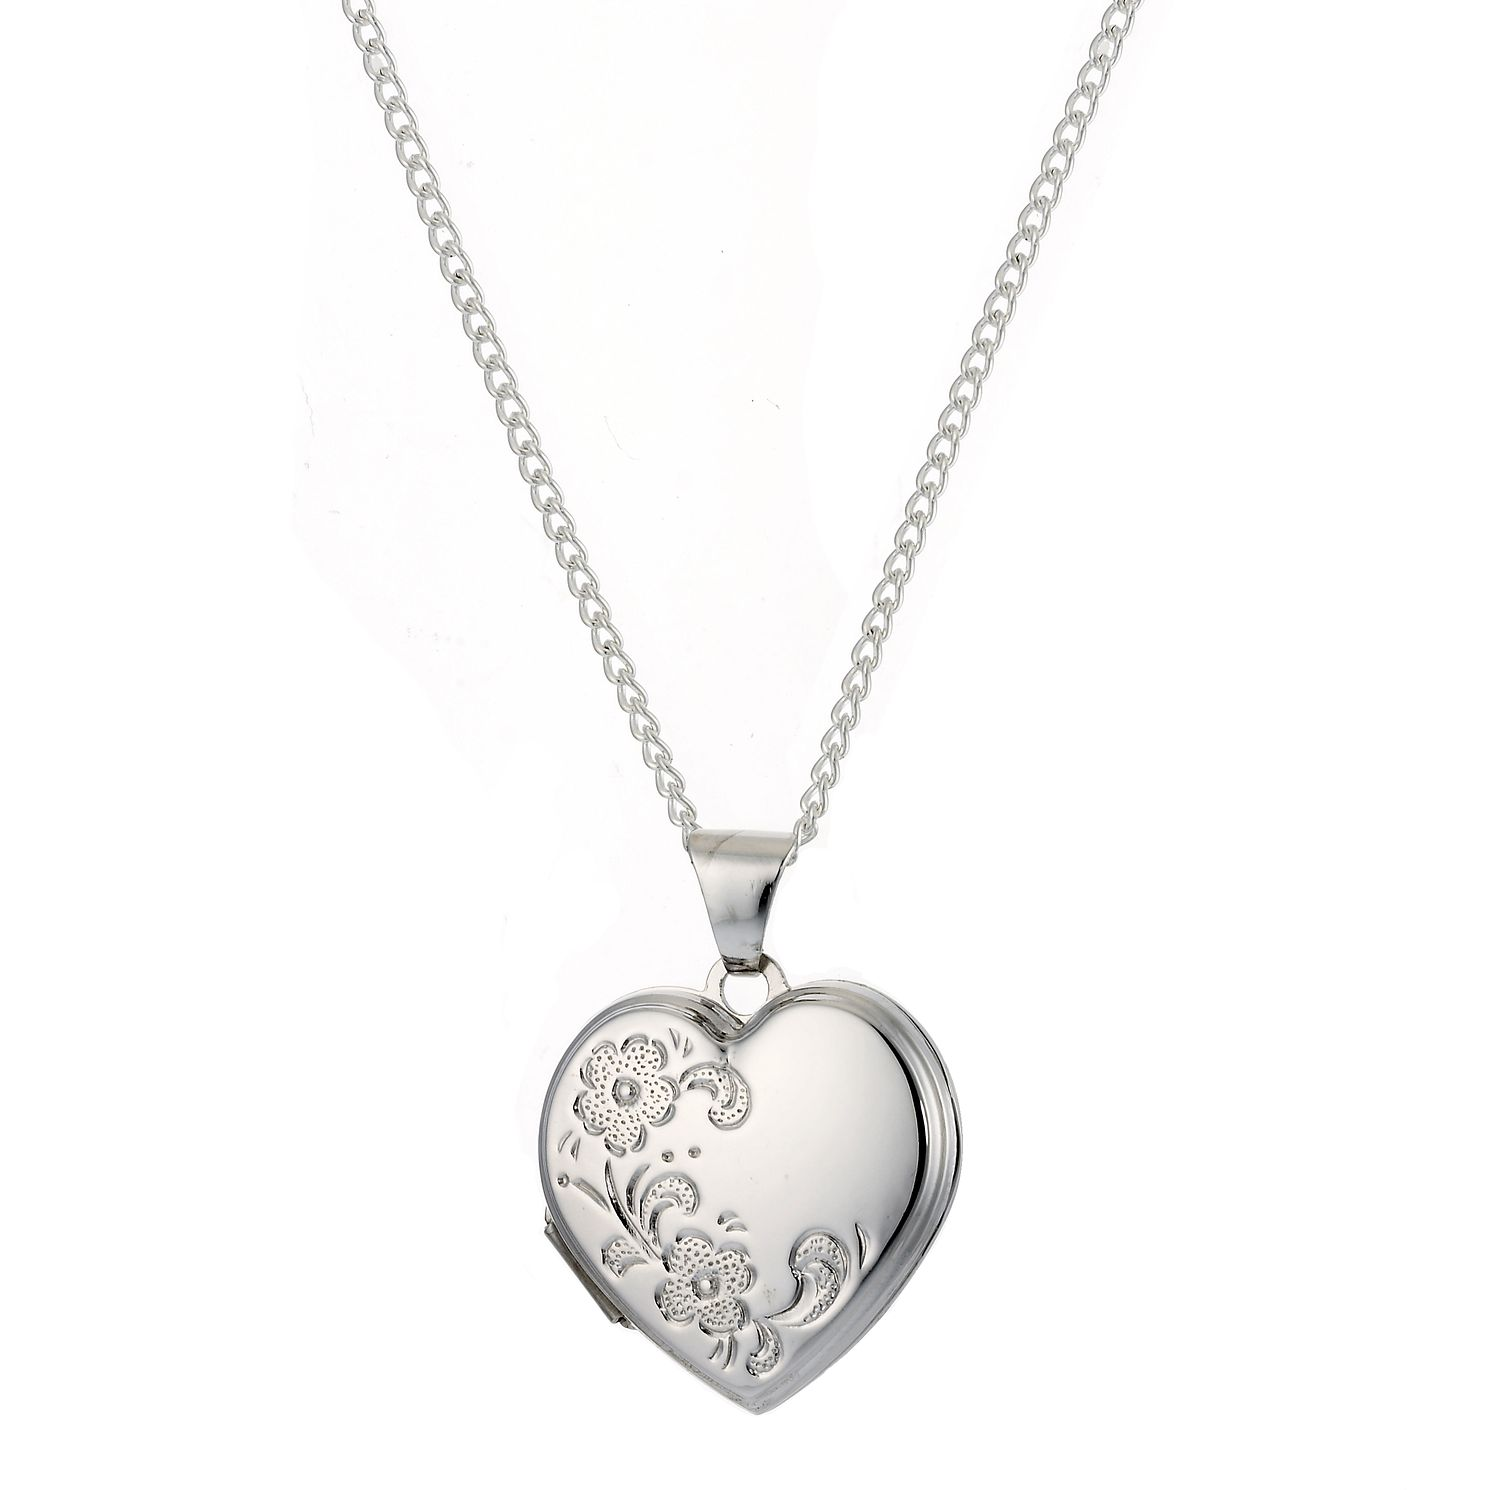 heart sweet images best necklace unique pinterest silver lockets sterling new unbranded on pendant jewelry locket fashion